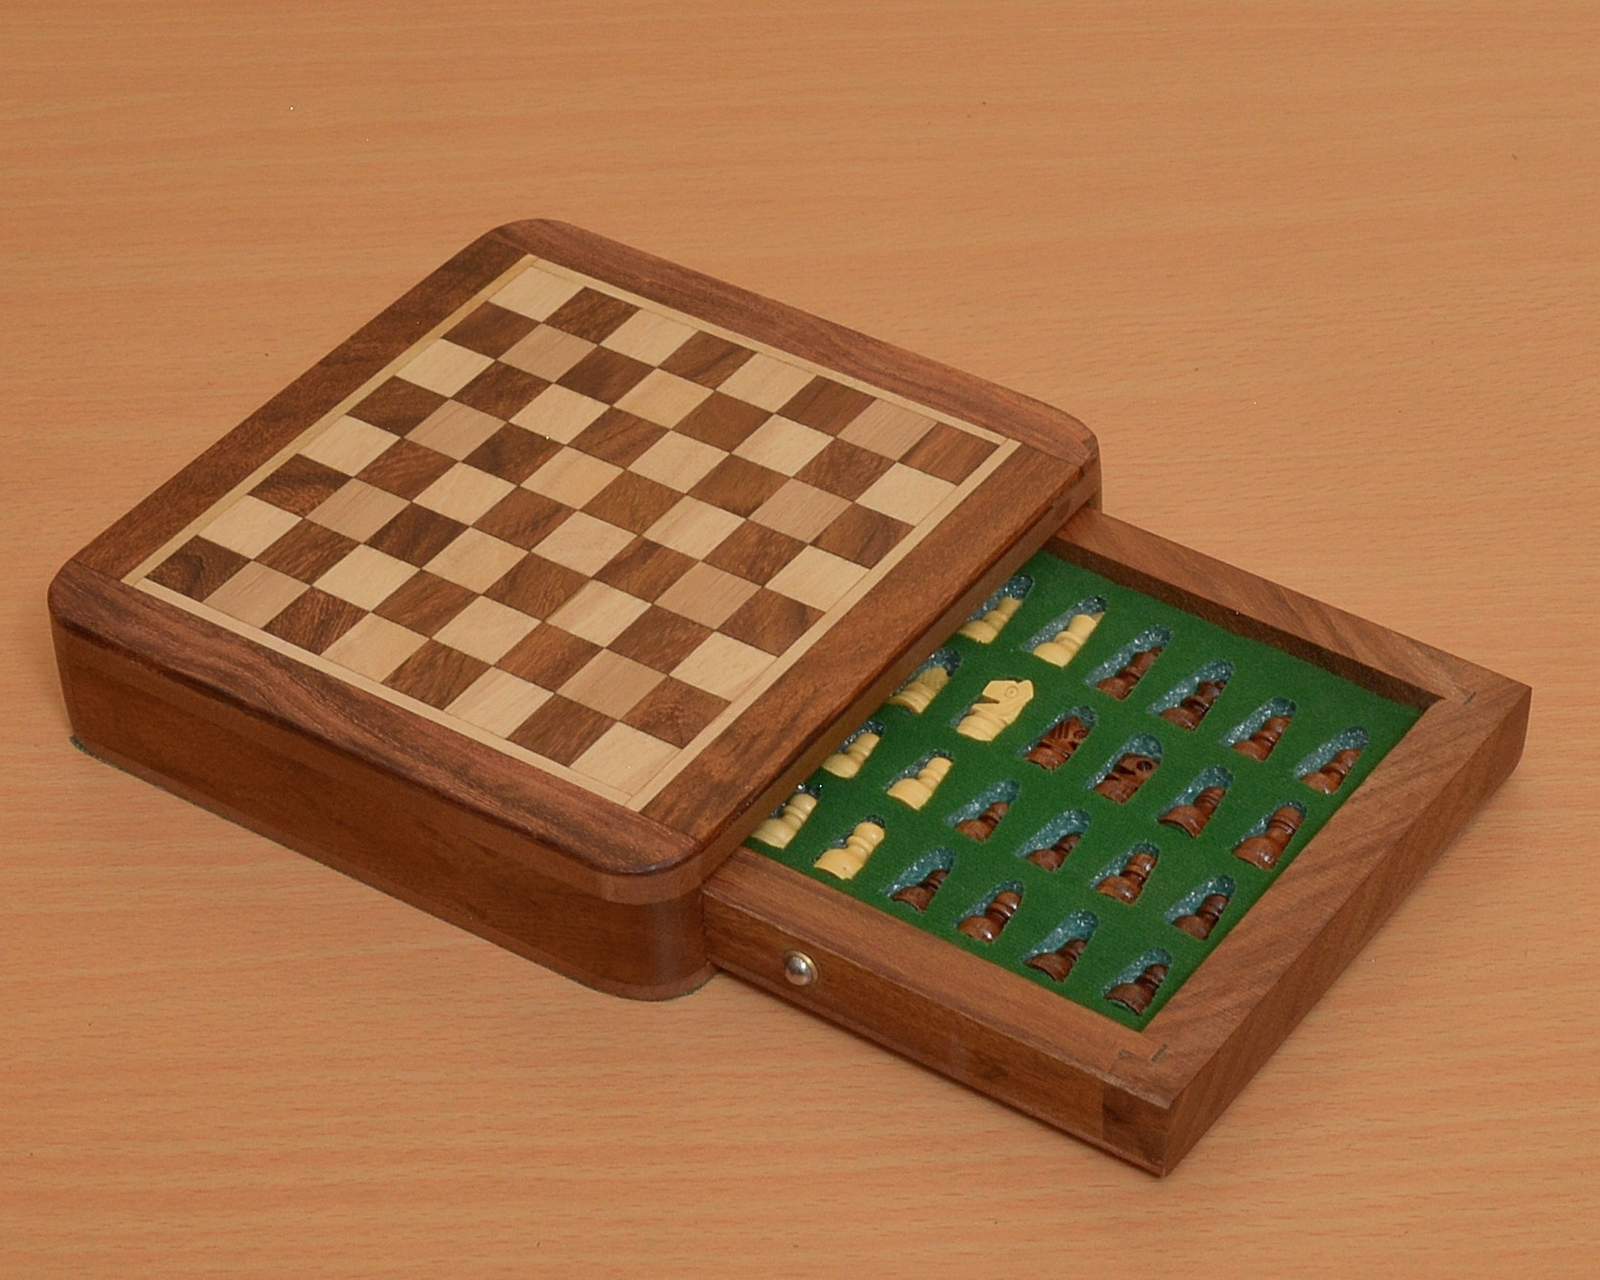 """Traveling Magnetic Chess Set 5 x 5 """" with Drawer fitted pieces from India M0001"""